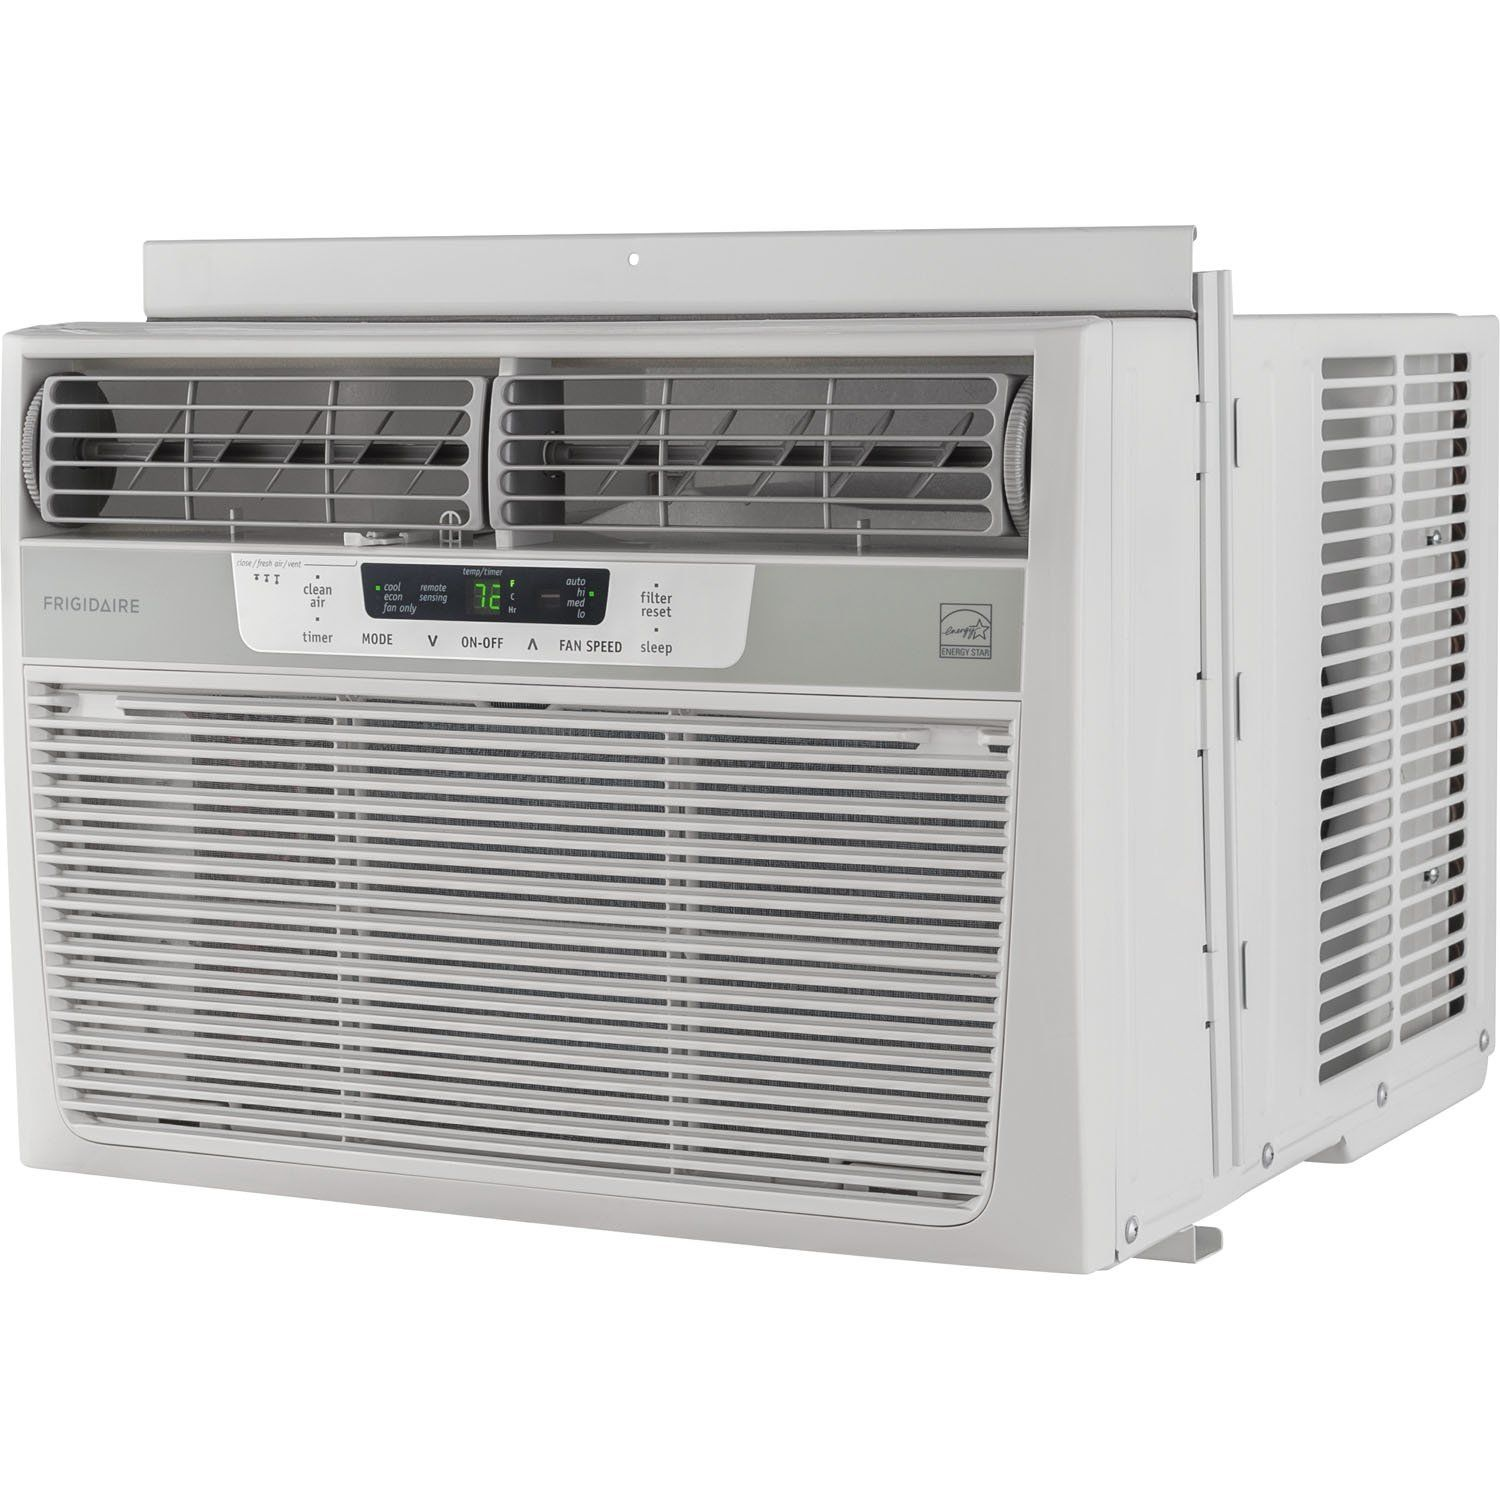 Frigidaire 12000 Btu 115v Windowmounted Compact Air Conditioner With Temperature Sen Best Window Air Conditioner Compact Air Conditioner Window Air Conditioner